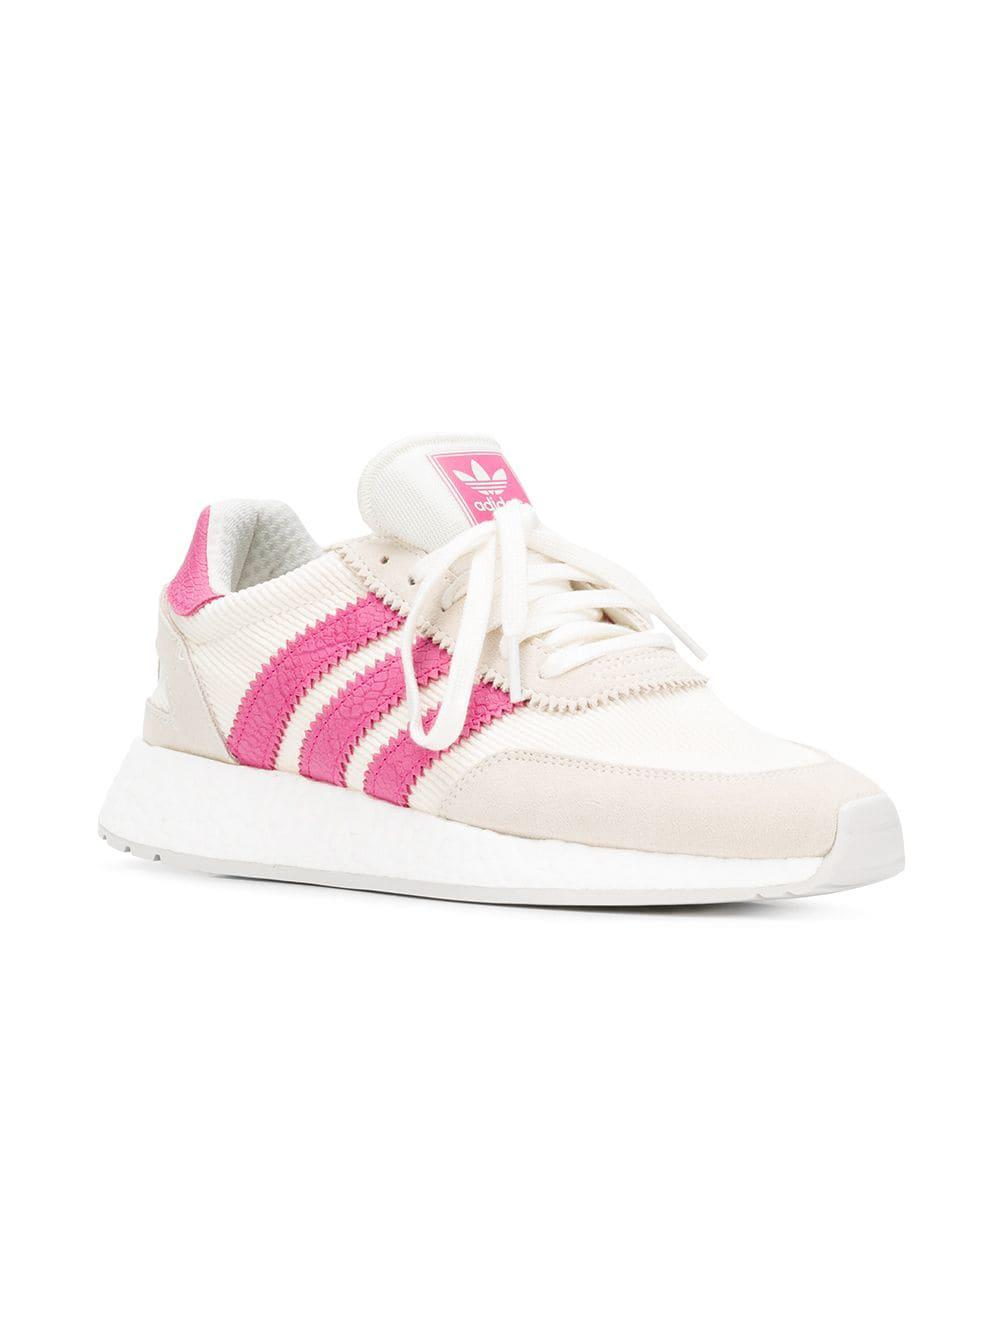 new product 8623d 77551 Adidas - White Originals Iniki I-5923 Runner Boost Sneakers - Lyst. View  fullscreen